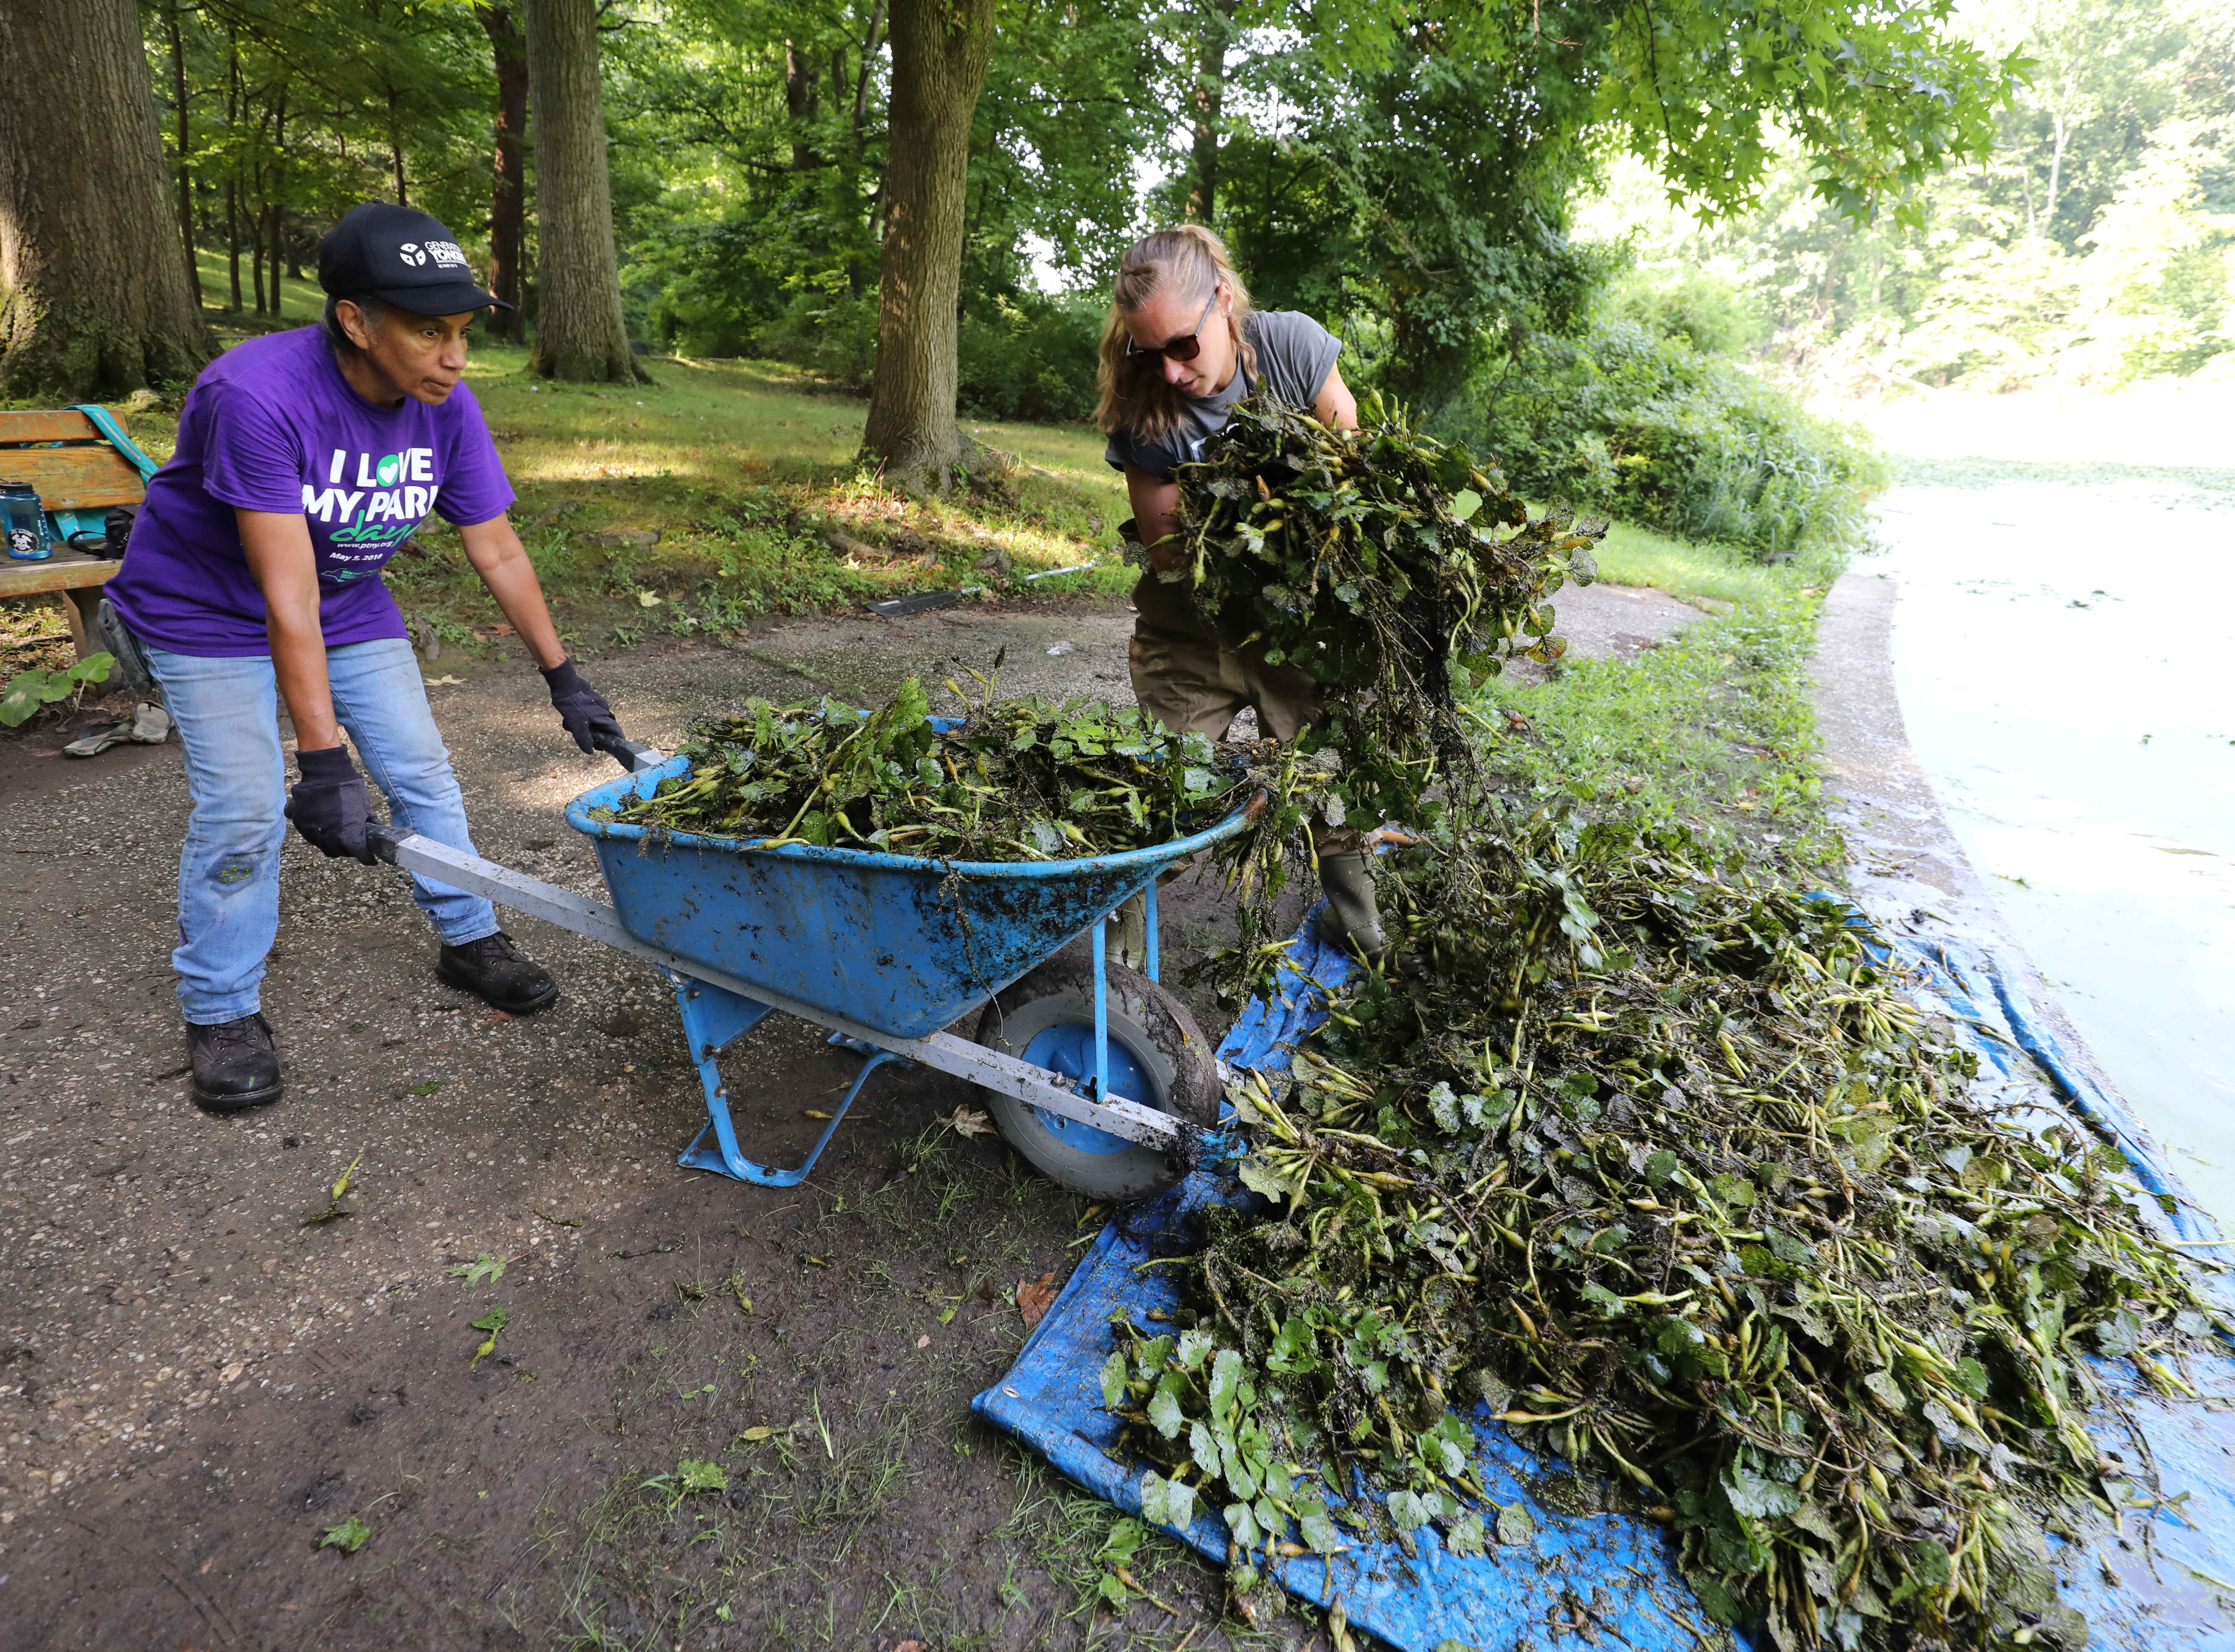 Volunteer Norma Silva and Erin Cordiner, the volunteer coordinator with The Westchester Parks Foundation, load invasive water chestnut plants into a wheelbarrow at Tibbetts Brook Park in Yonkers, Aug. 8, 2018.